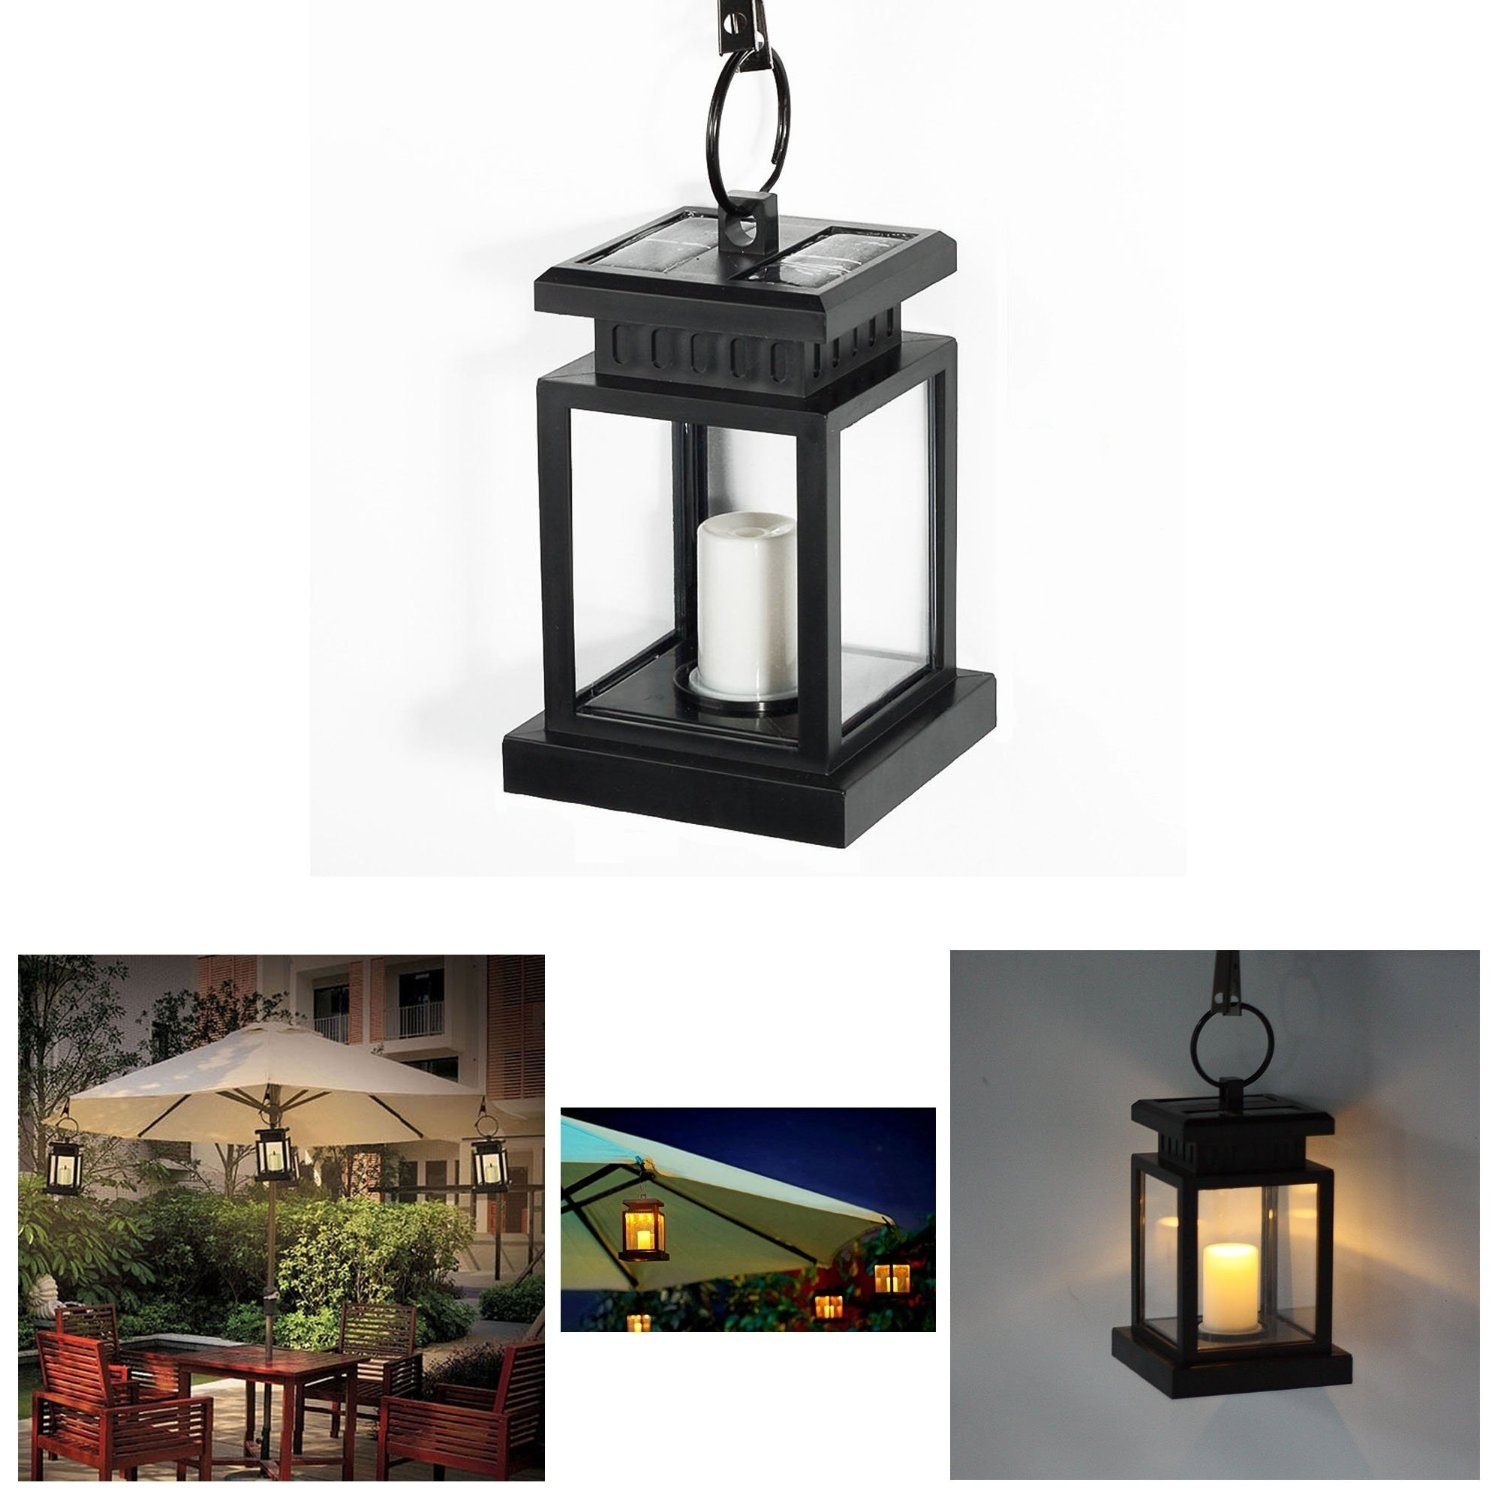 15 Collection of Solar Powered Outdoor Hanging Lanterns